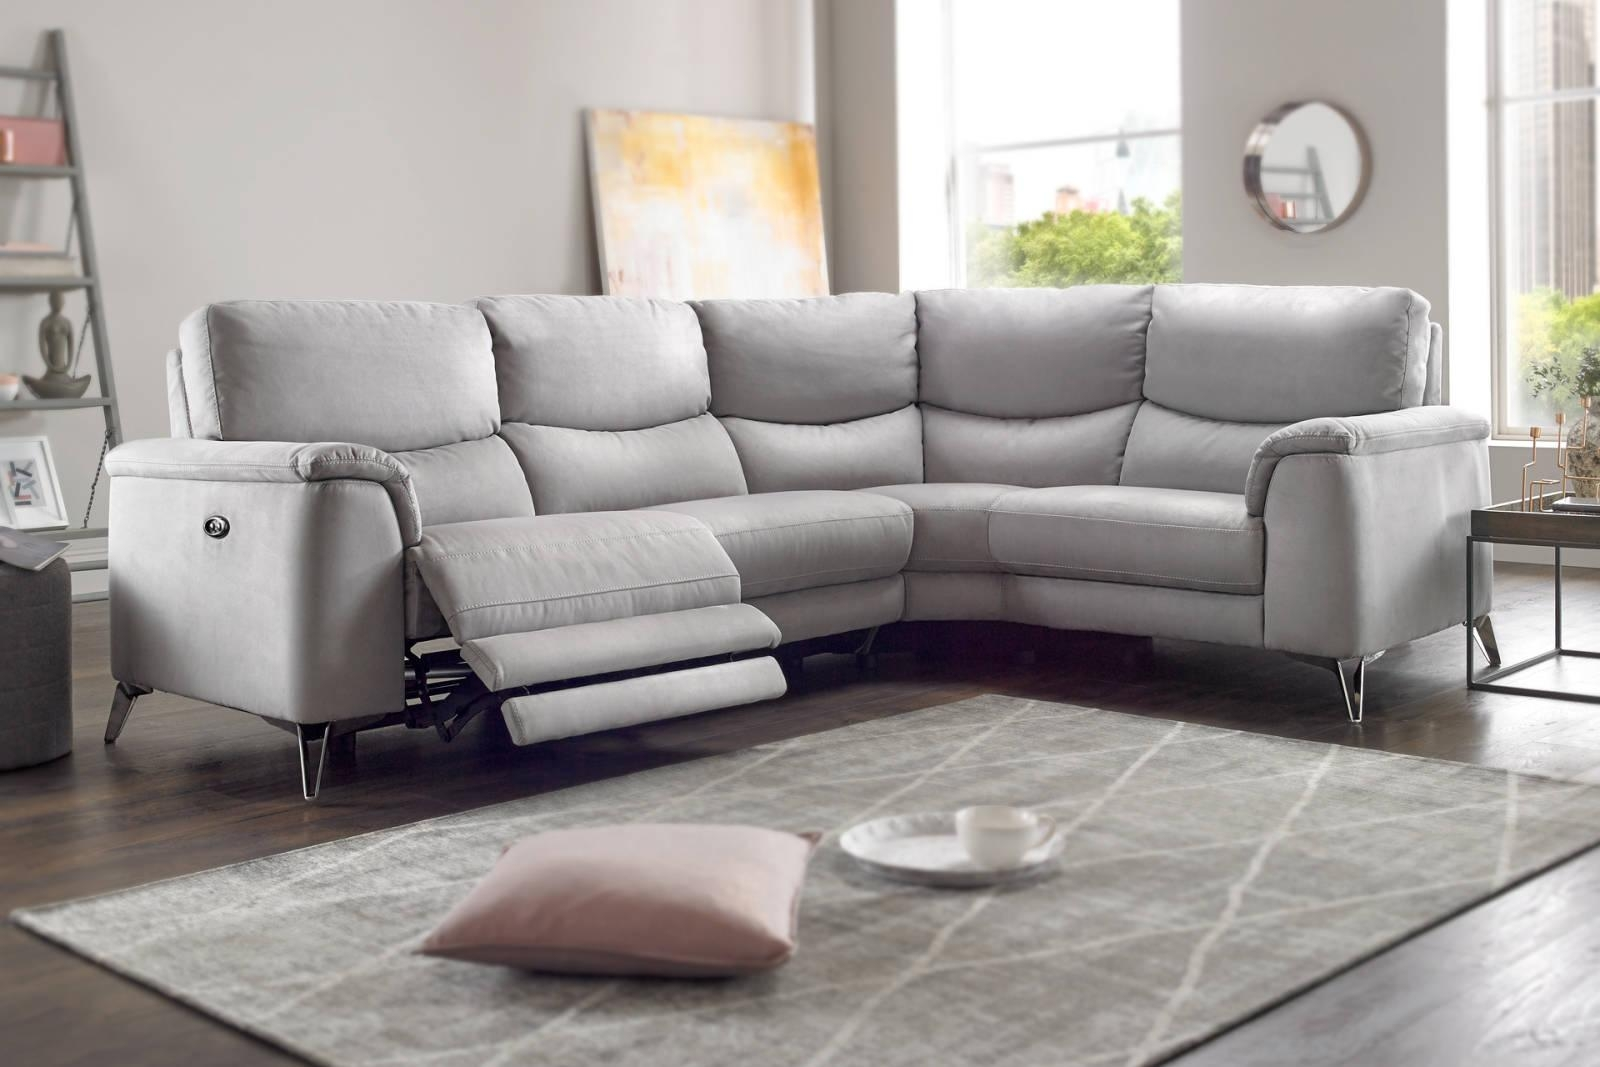 Corner Sofas In Leather, Fabric | Sofology Inside Corner Sofa Leather (Image 5 of 20)